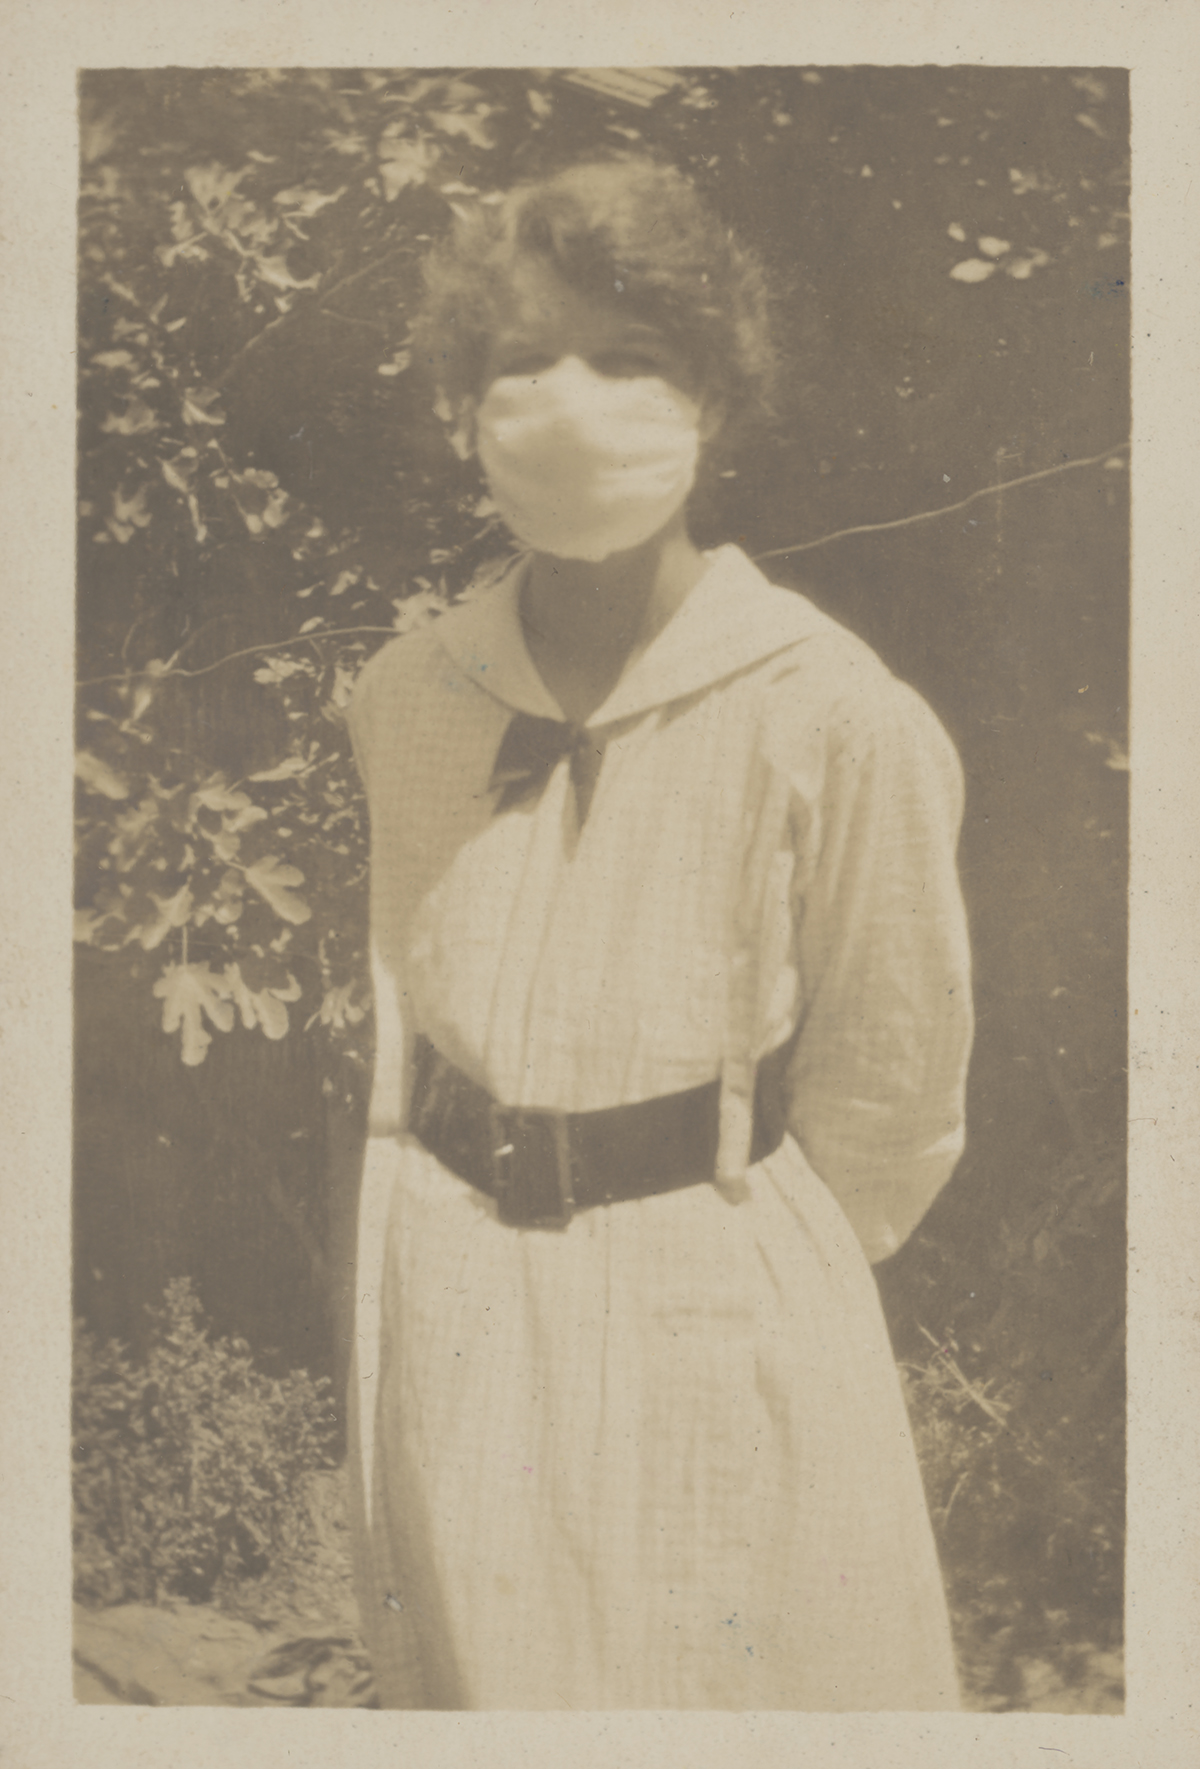 M.P.B.C. wearing a flu mask during the flu epidemic, February, 1919